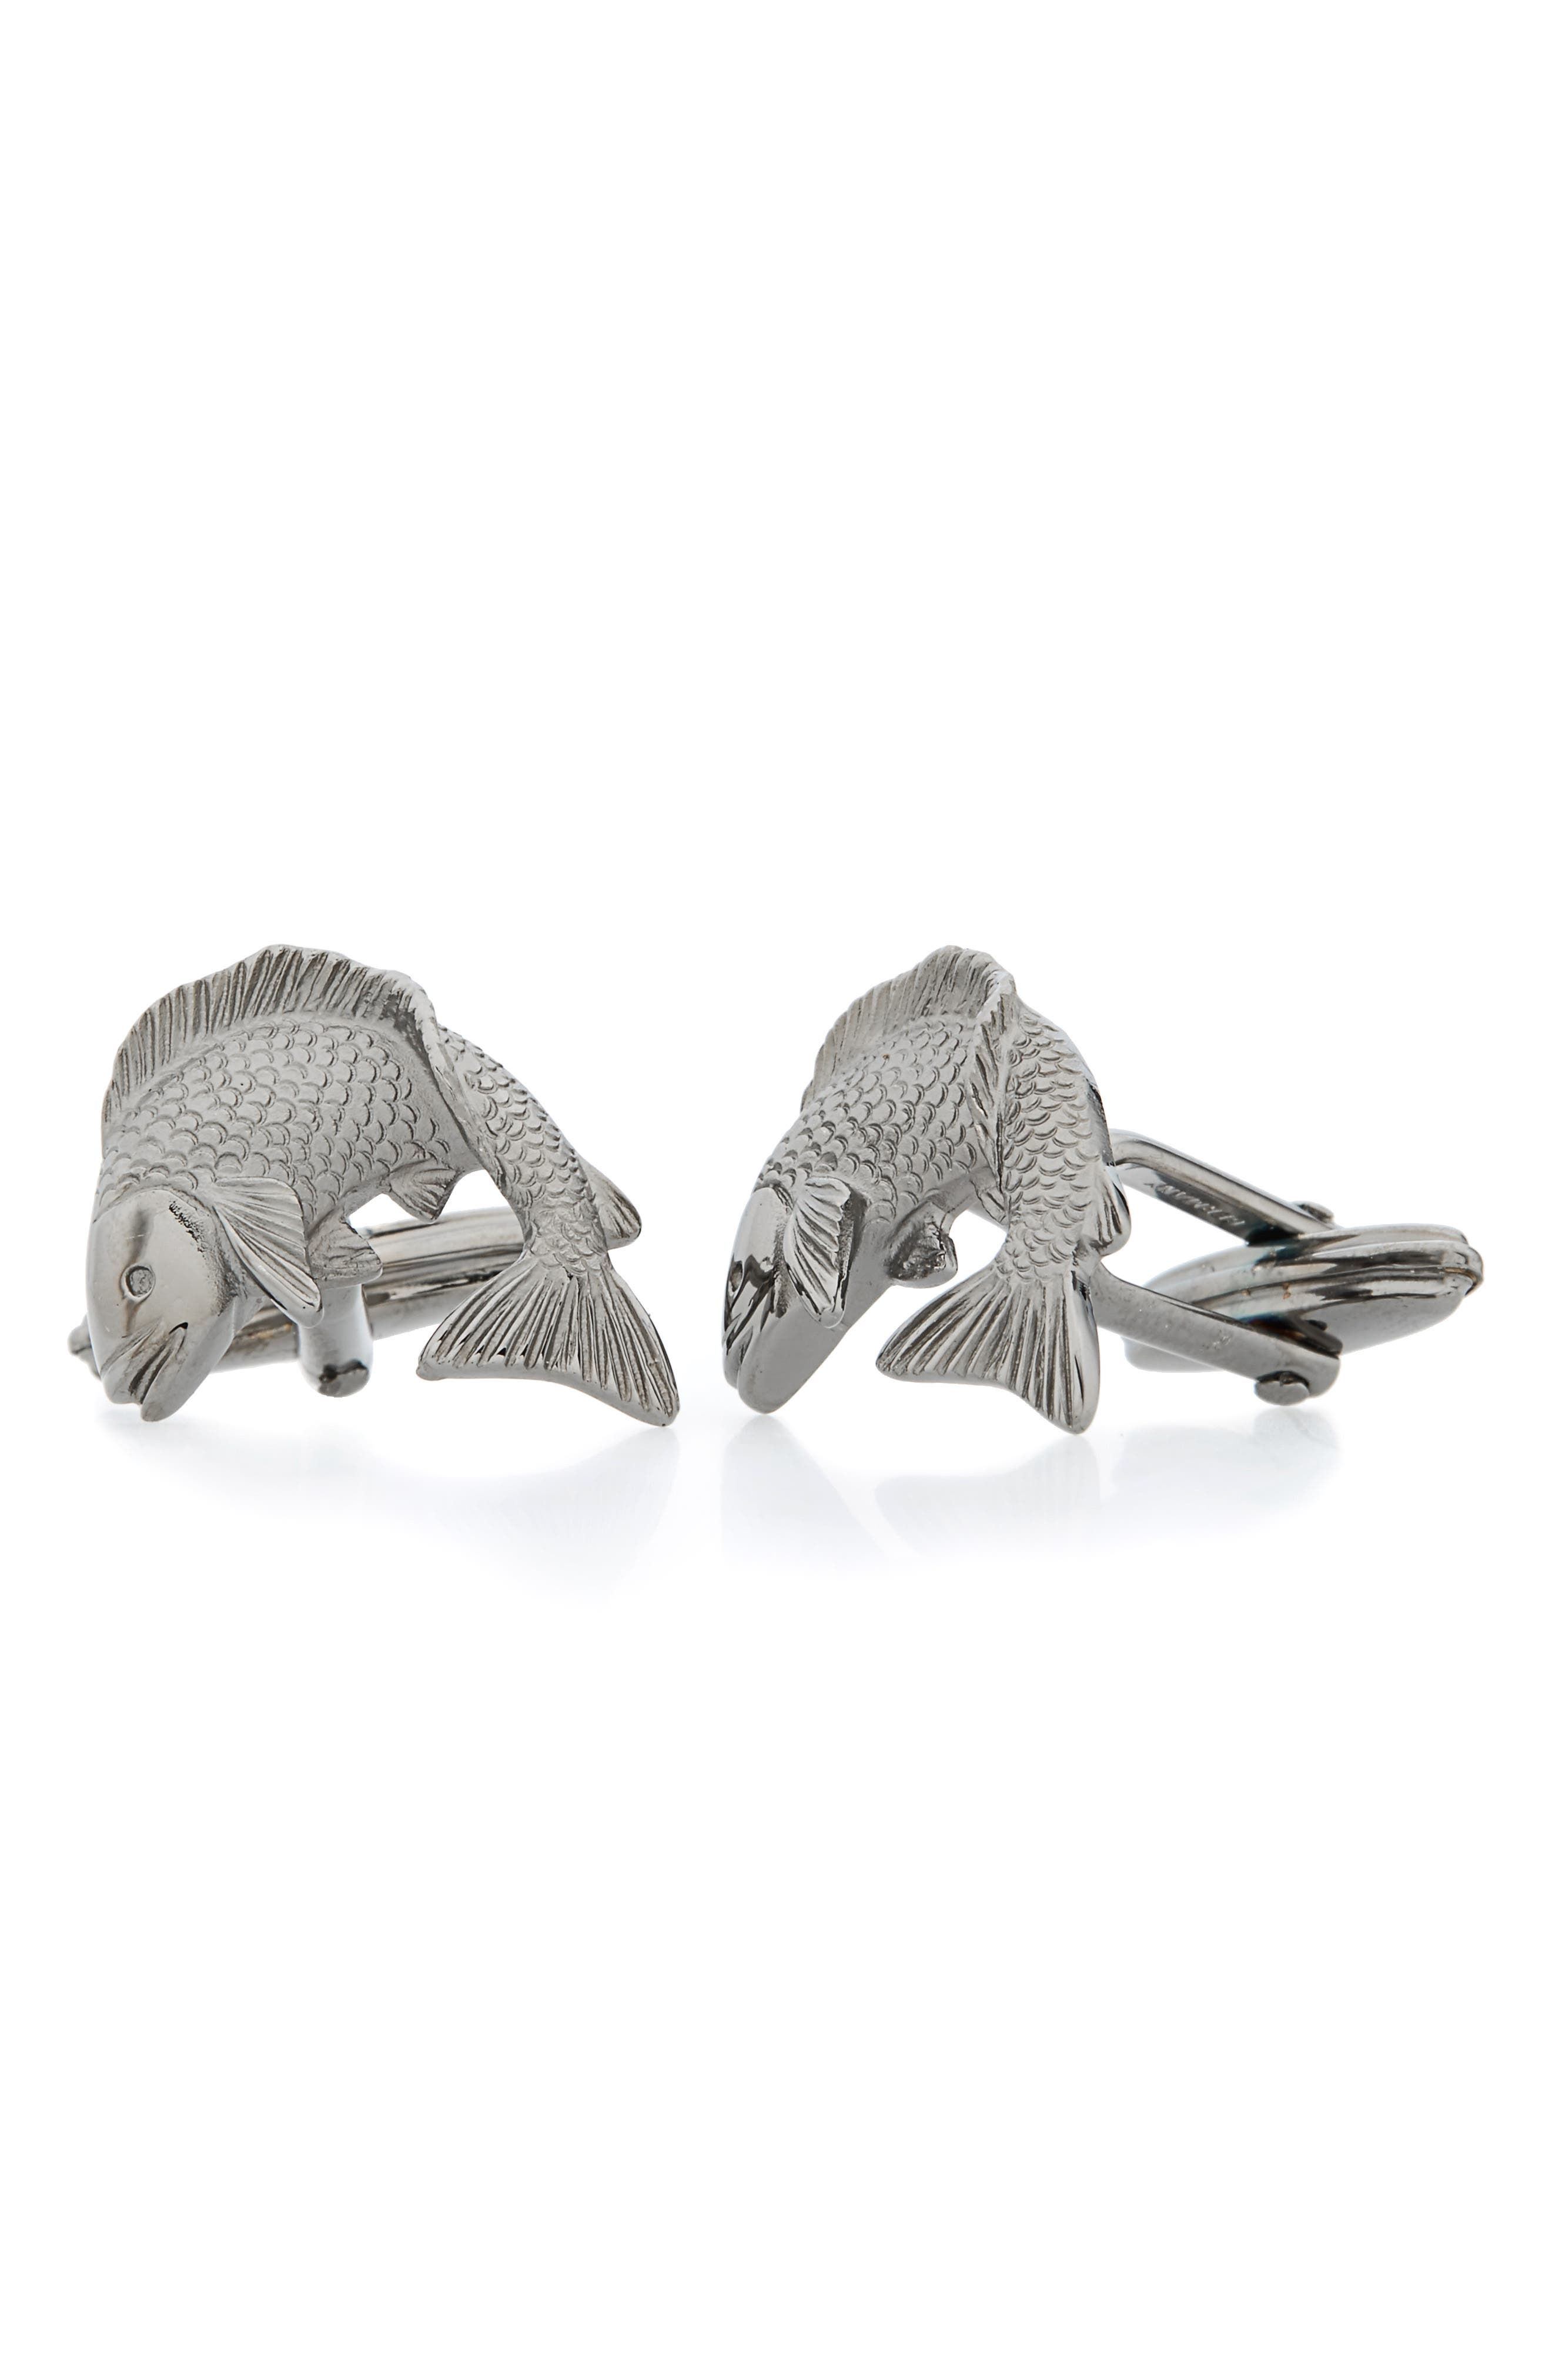 Fish Cuff Links,                         Main,                         color, RUTHENIUM PLATED